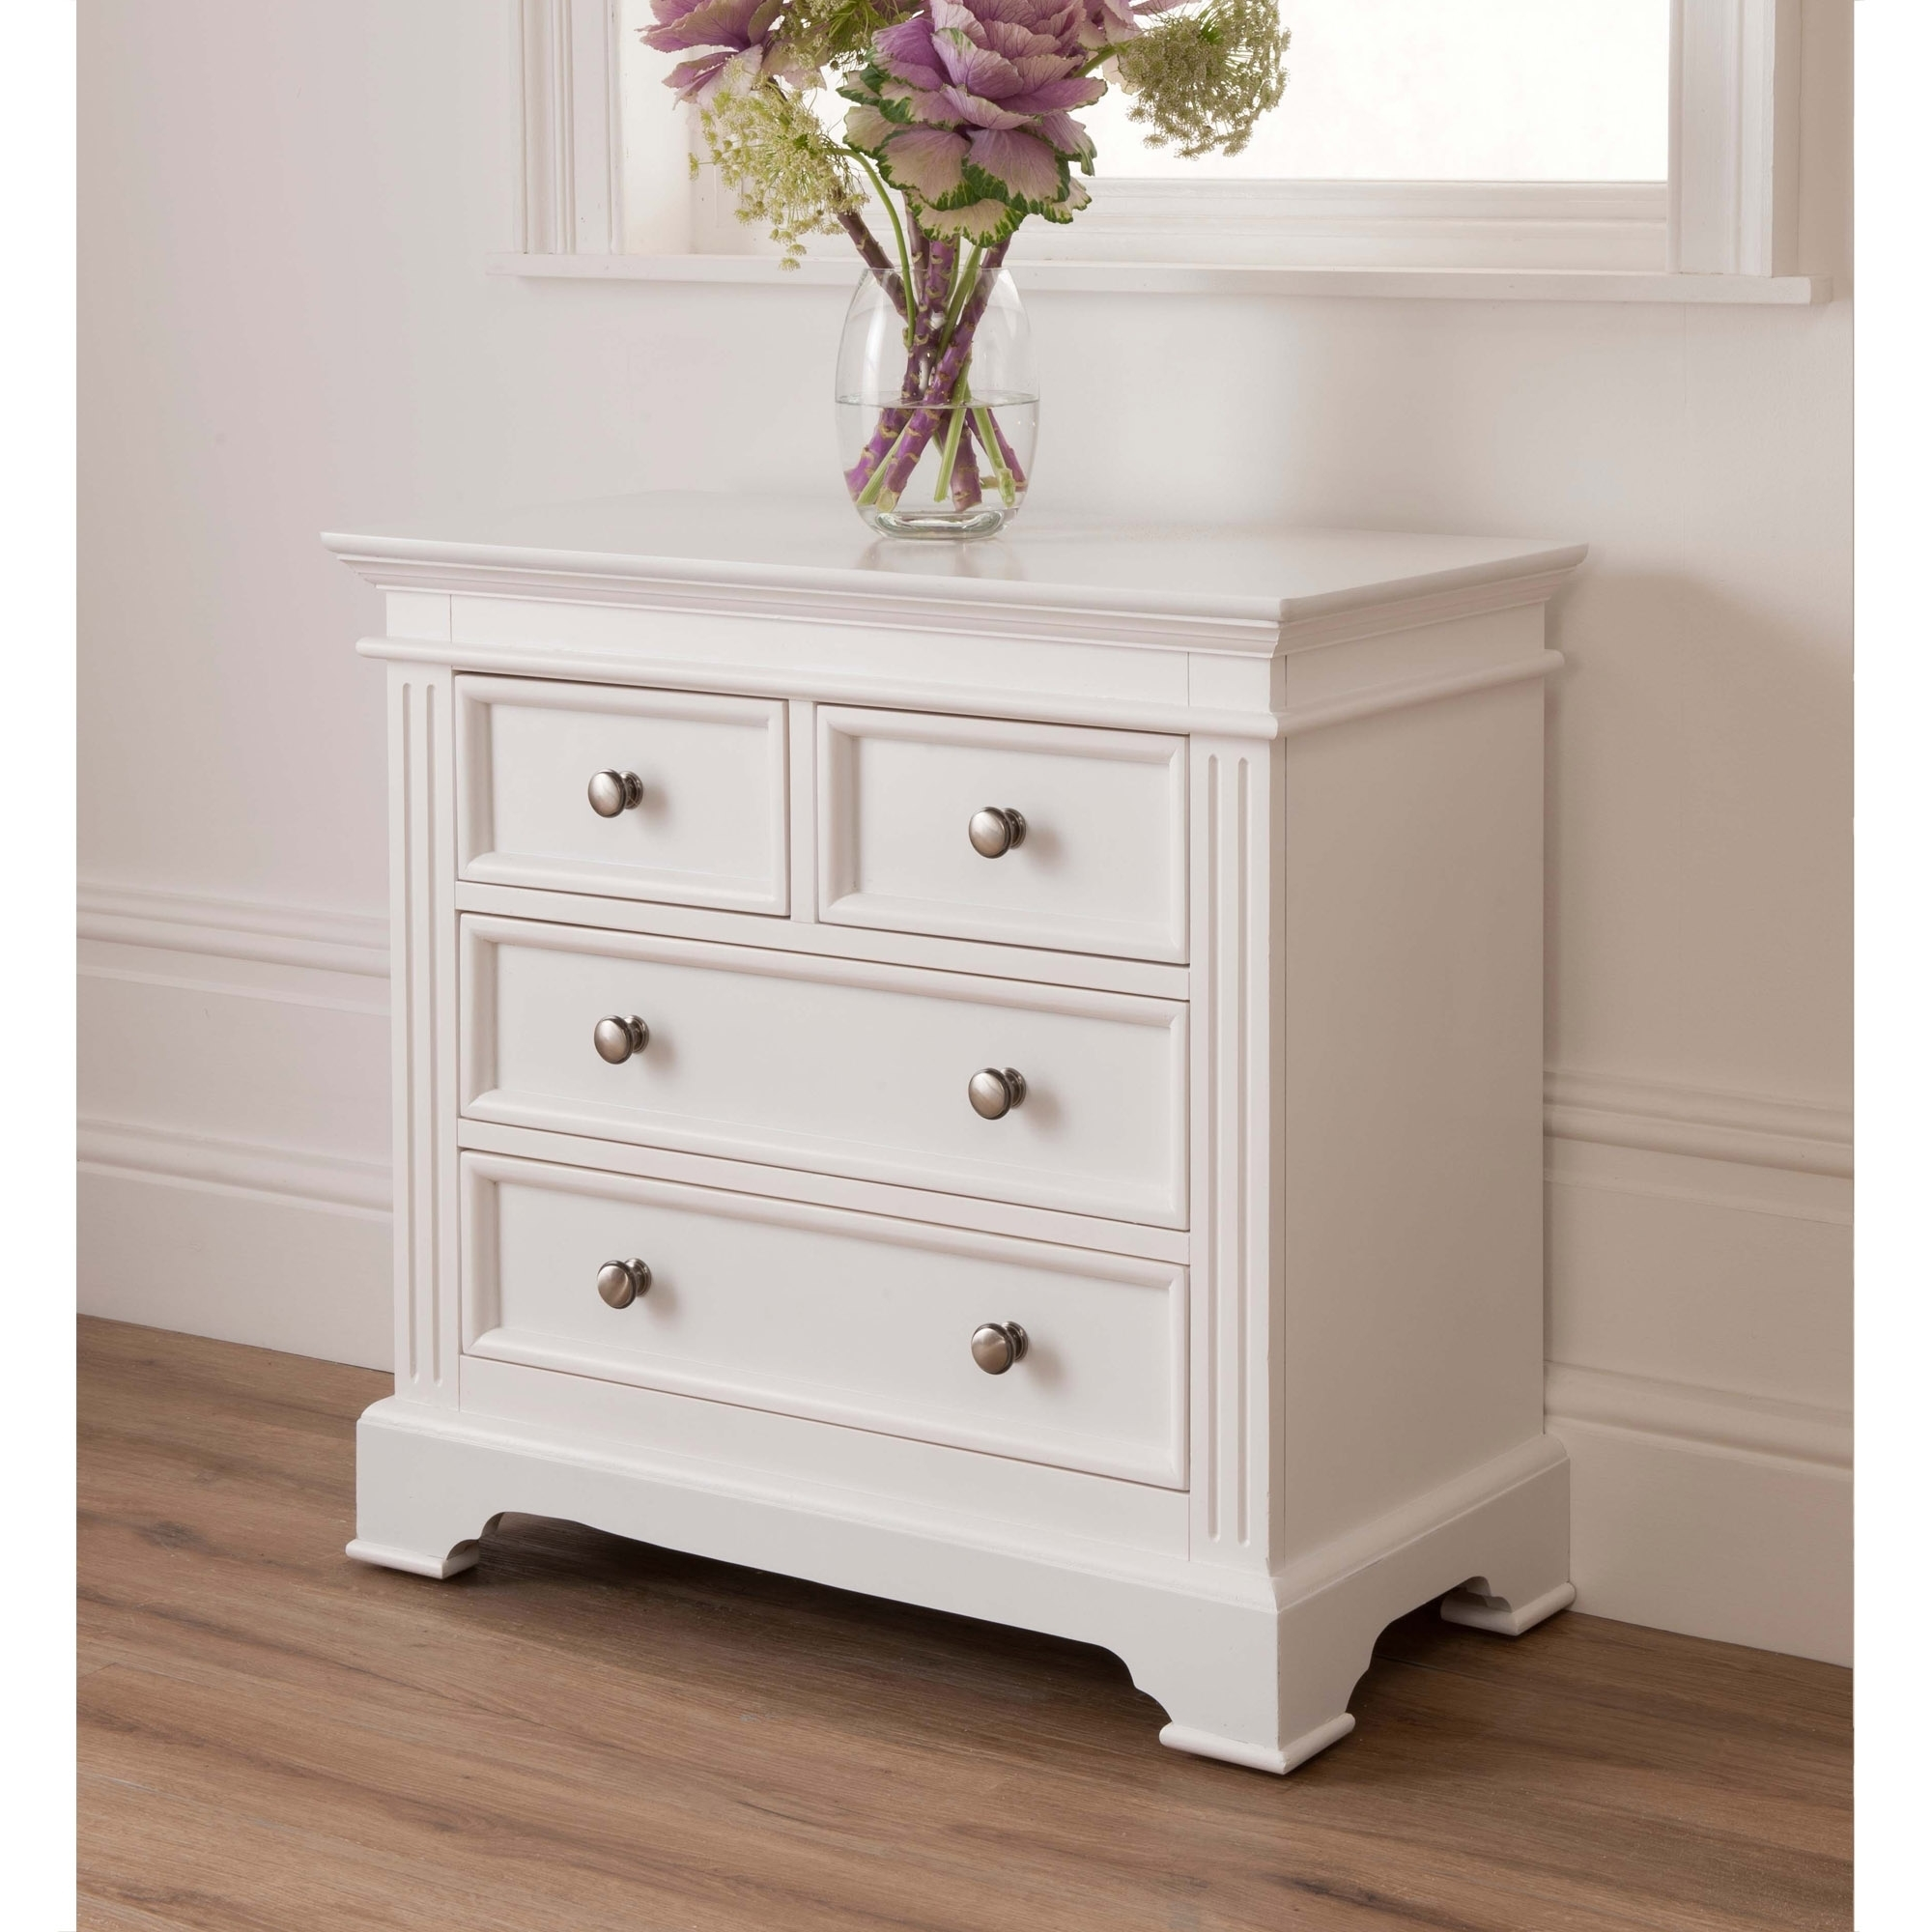 Sophia Shabby Chic Chest Of Drawers Working Well Alongside